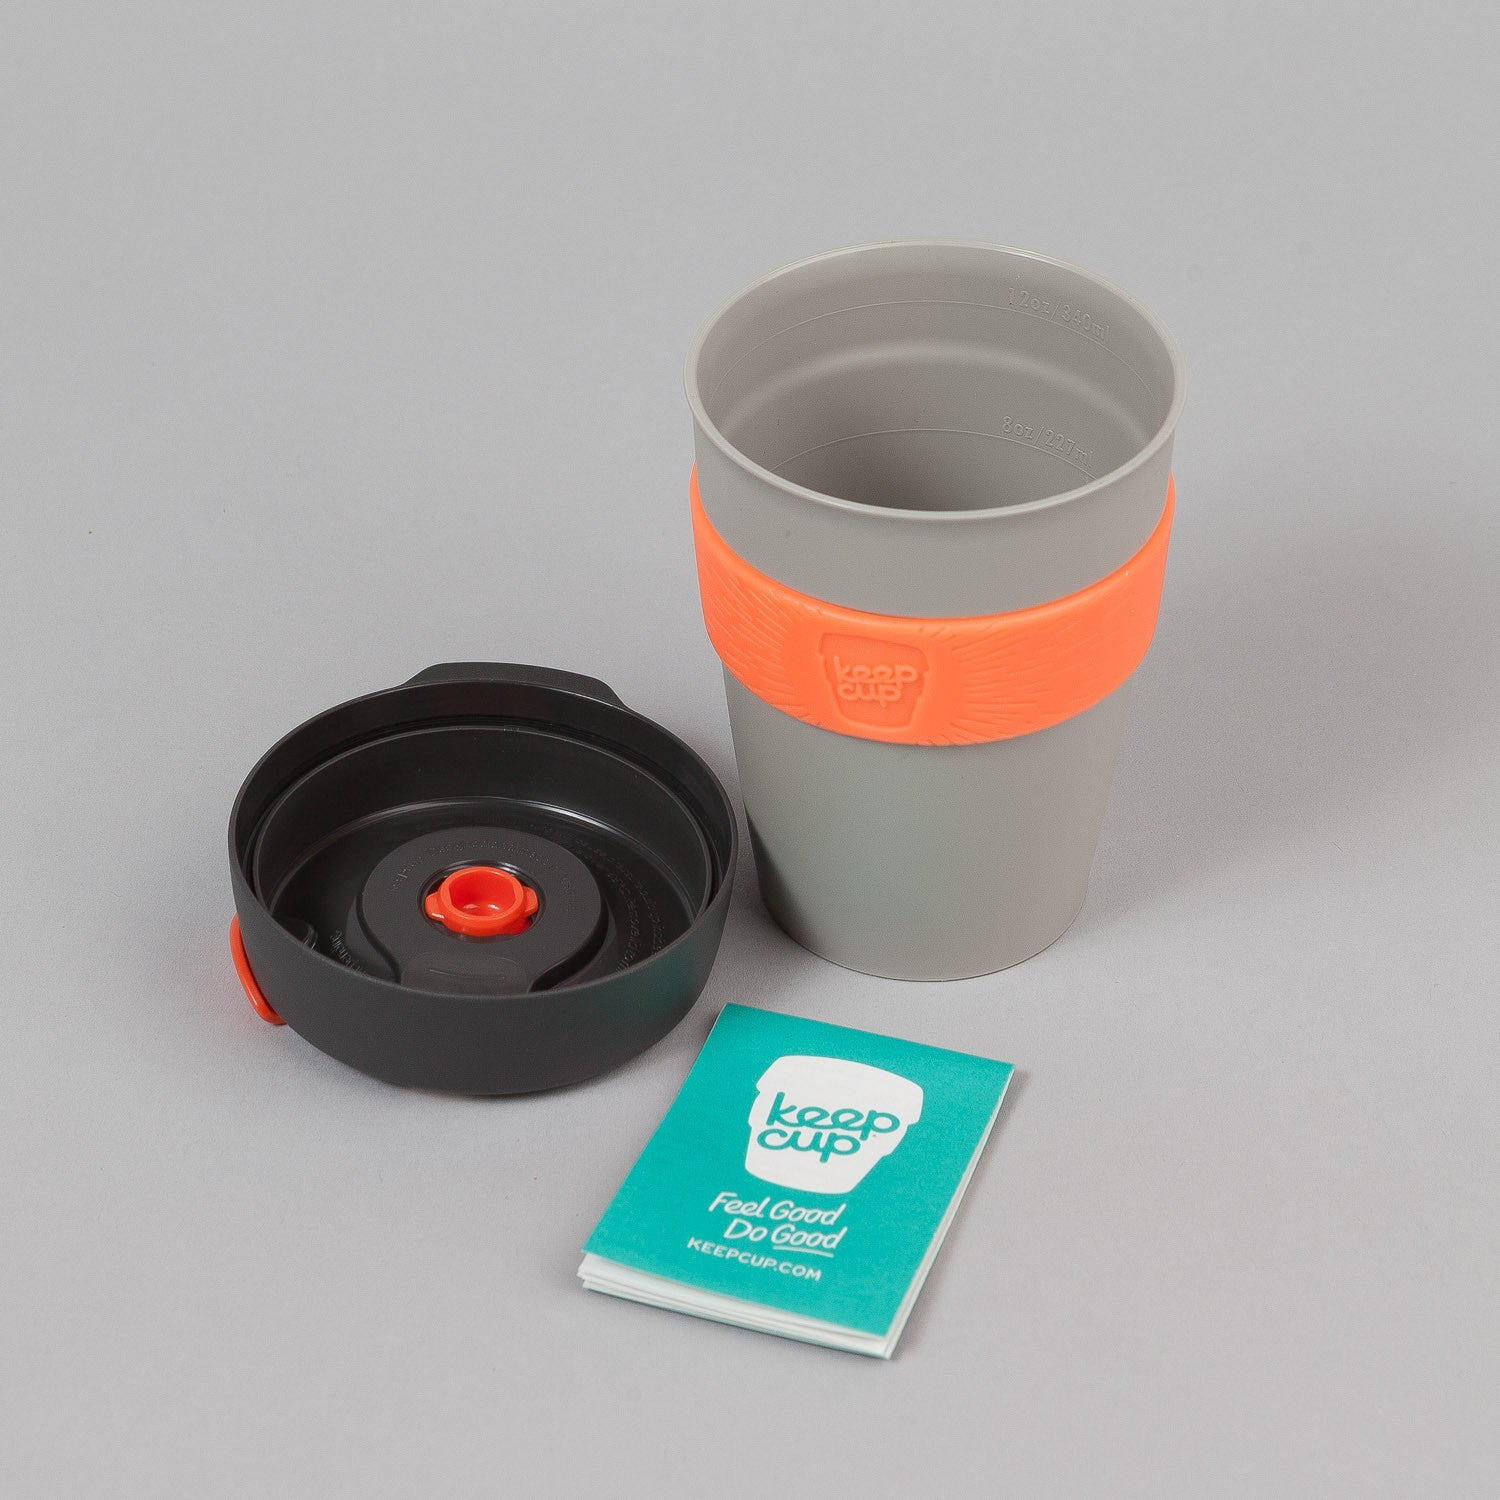 KeepCup Pandora 12oz Reusable Coffee Cup - Warm Grey / Soft Charcoal